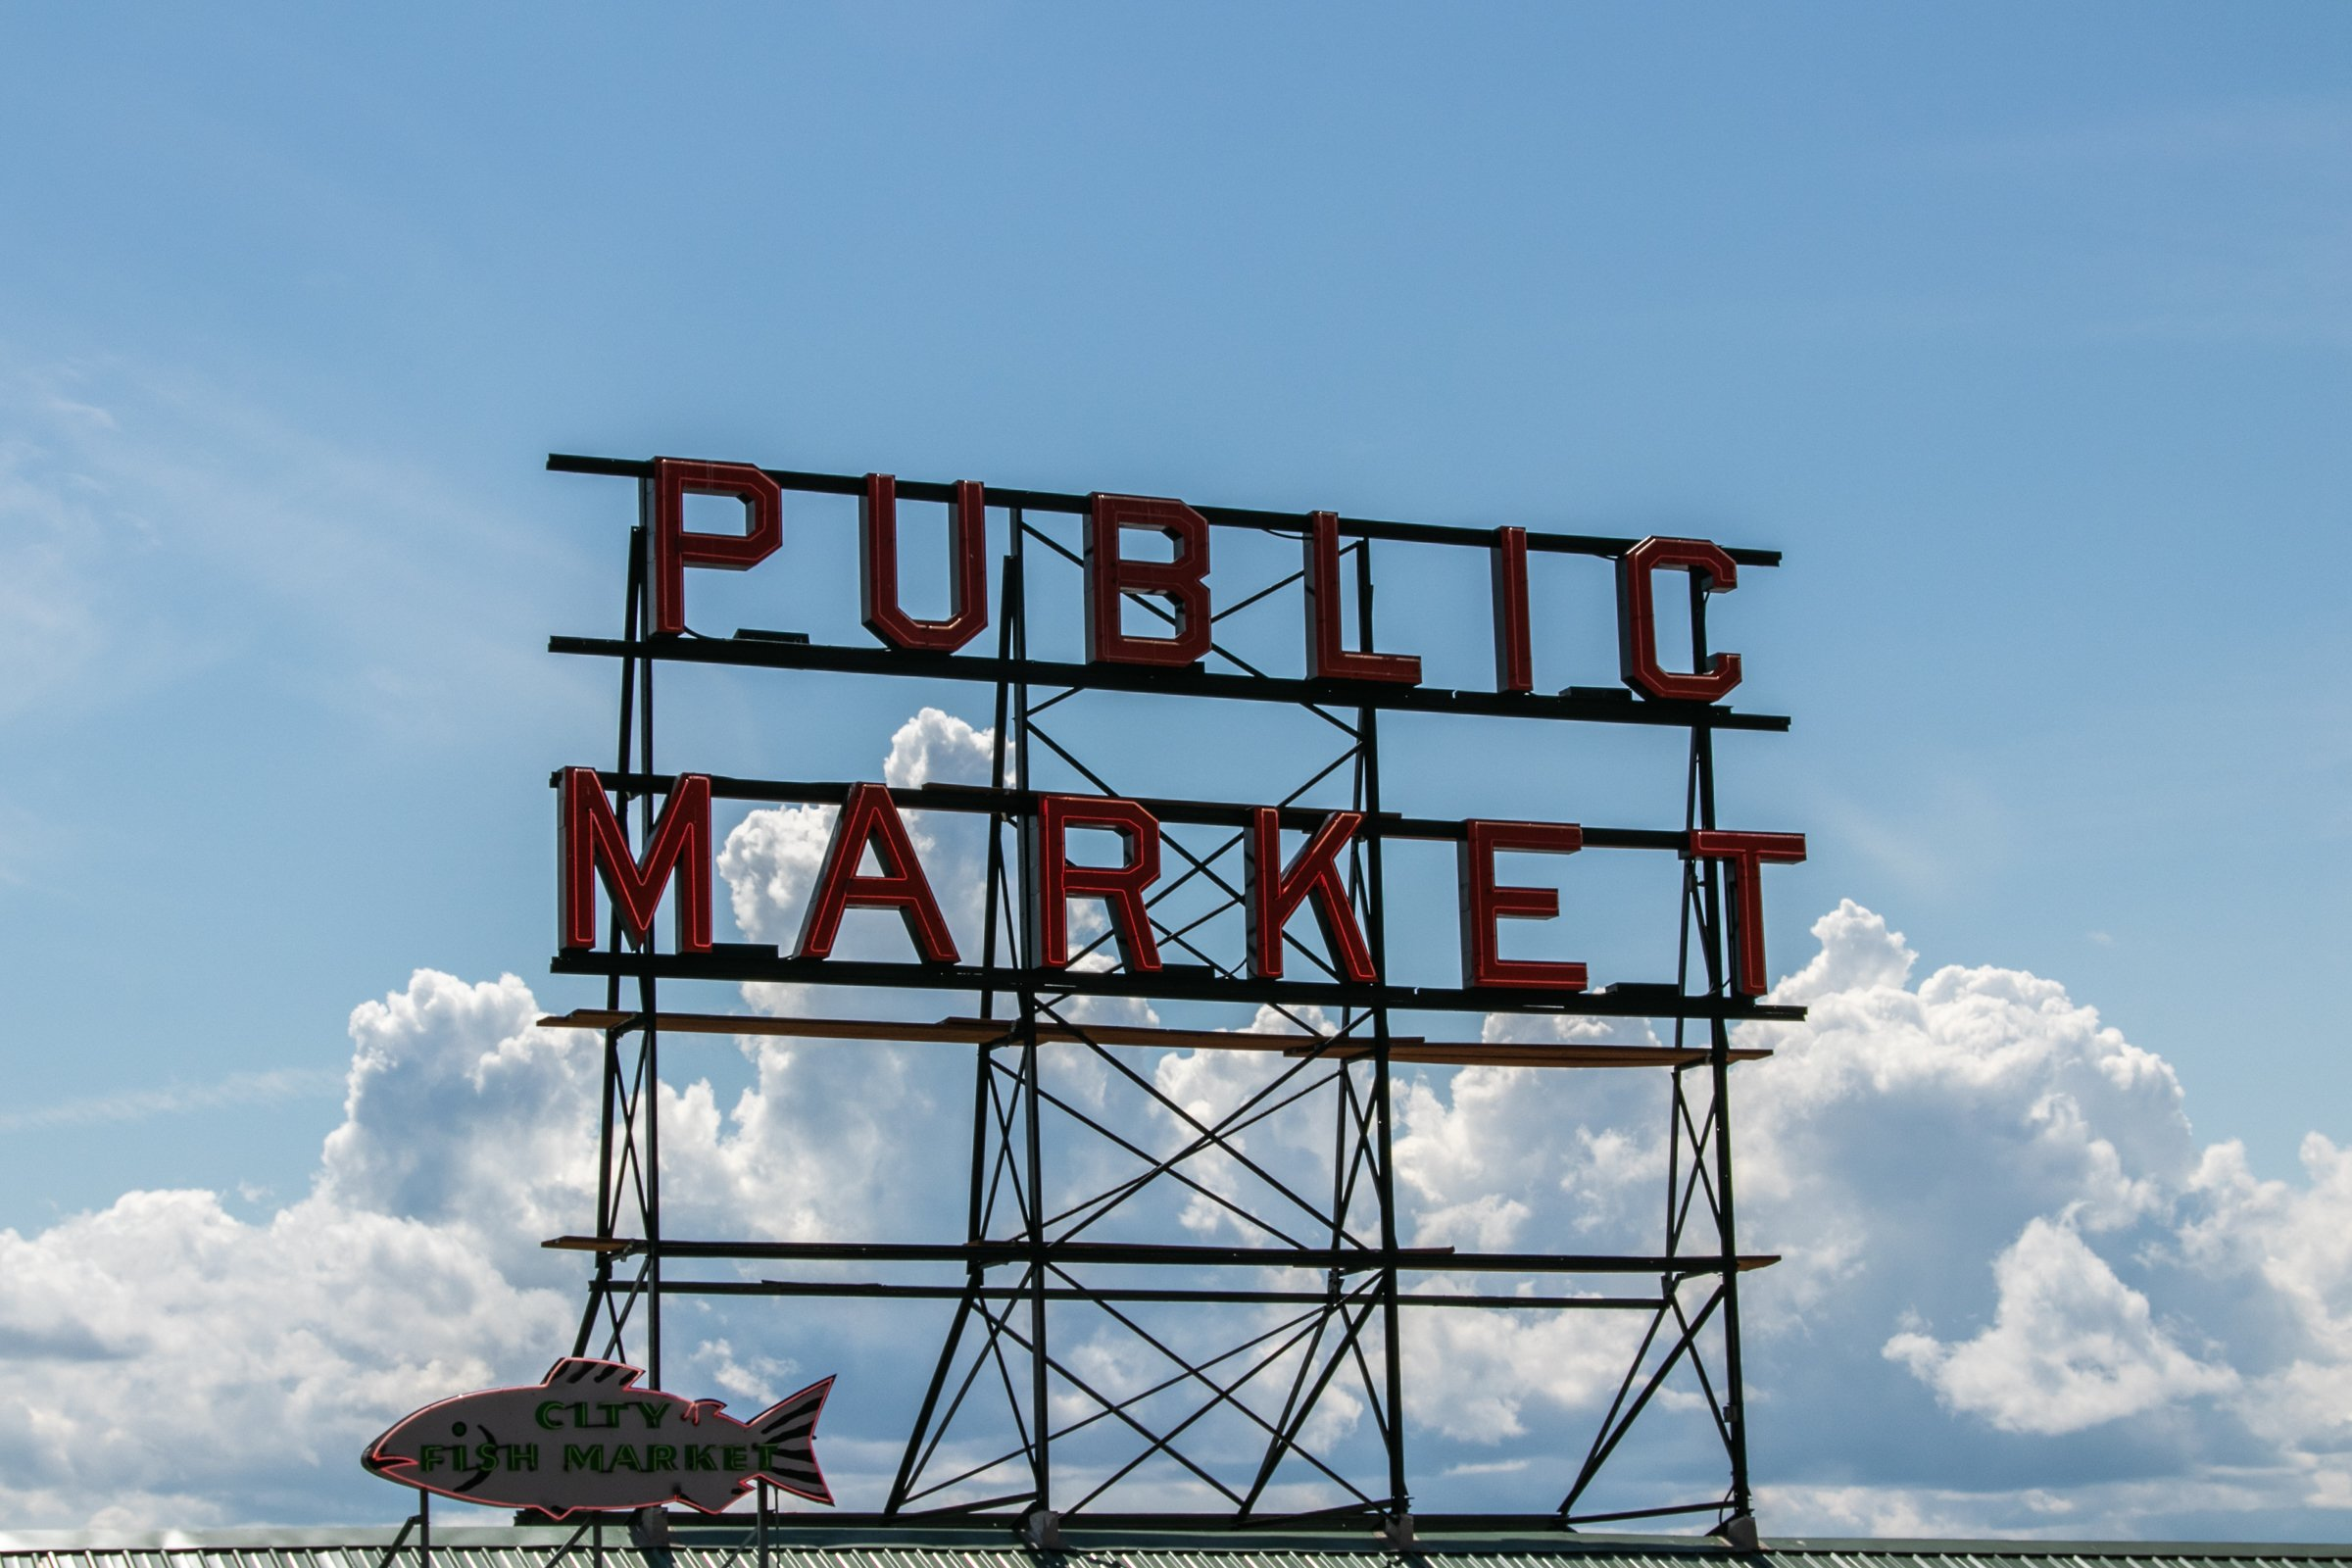 Unlit Public Market Neon Sign Against Clouds